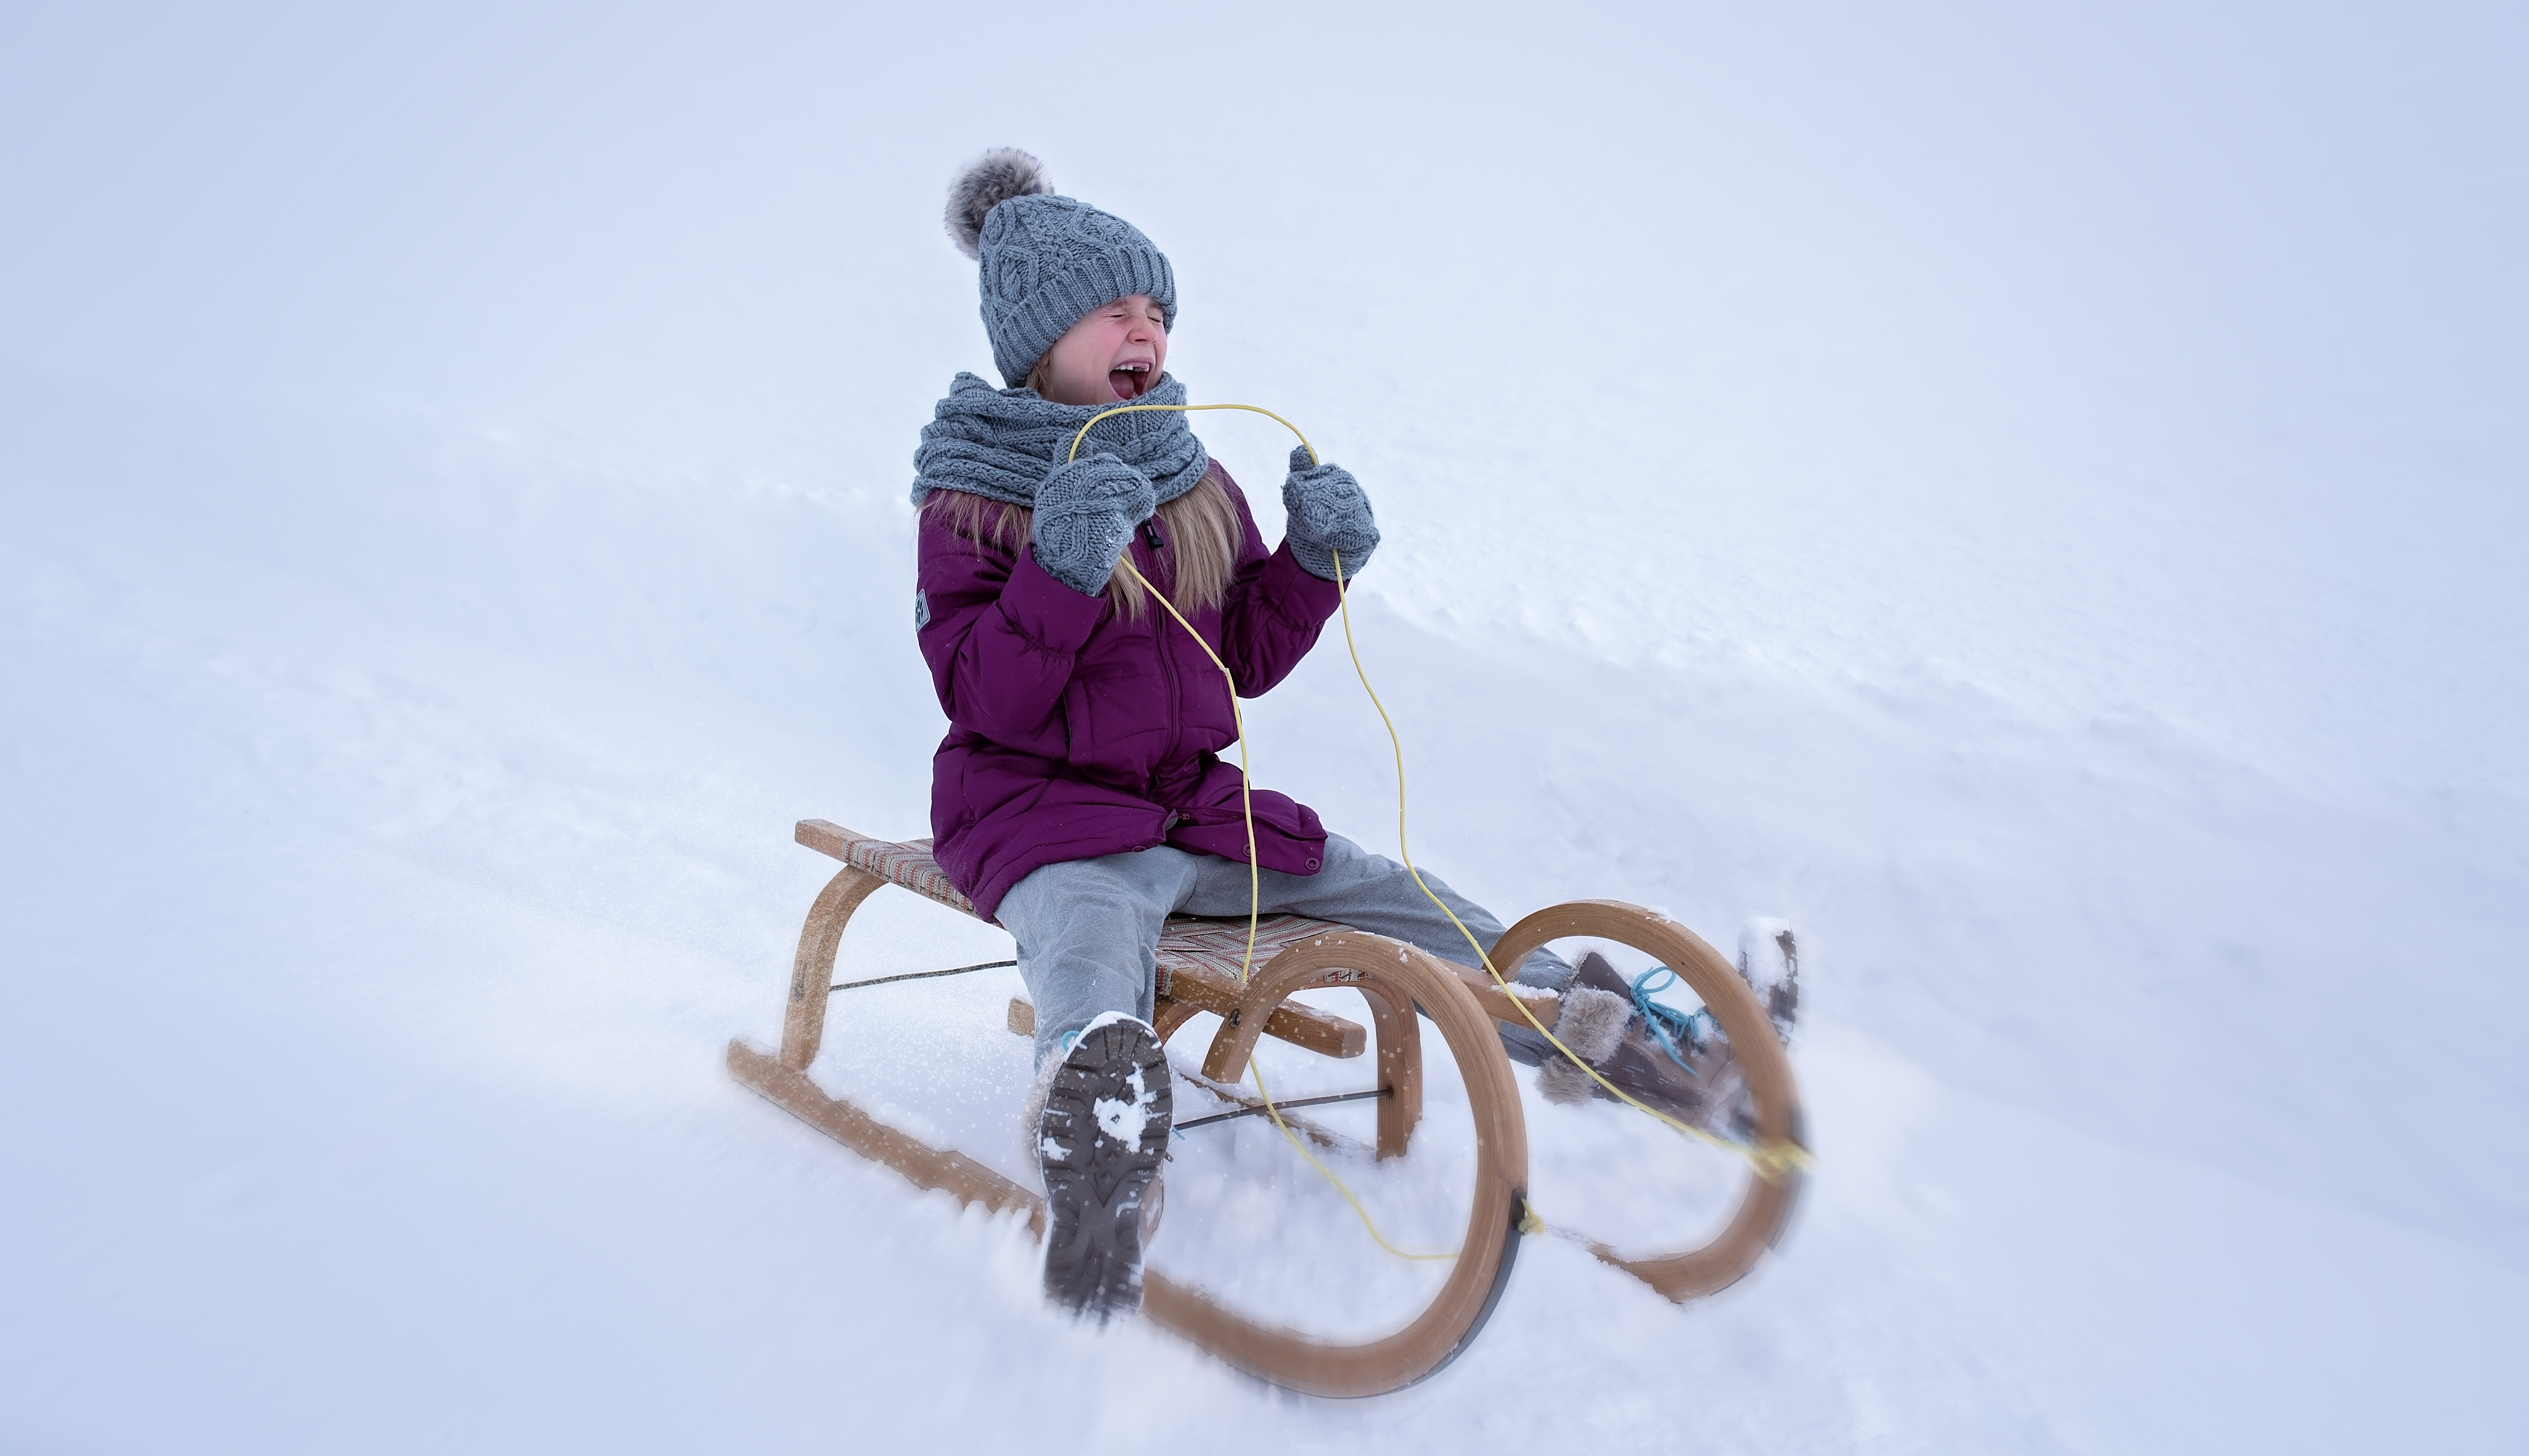 person-snow-winter-girl-bicycle-vehicle-823516-pxhere.com